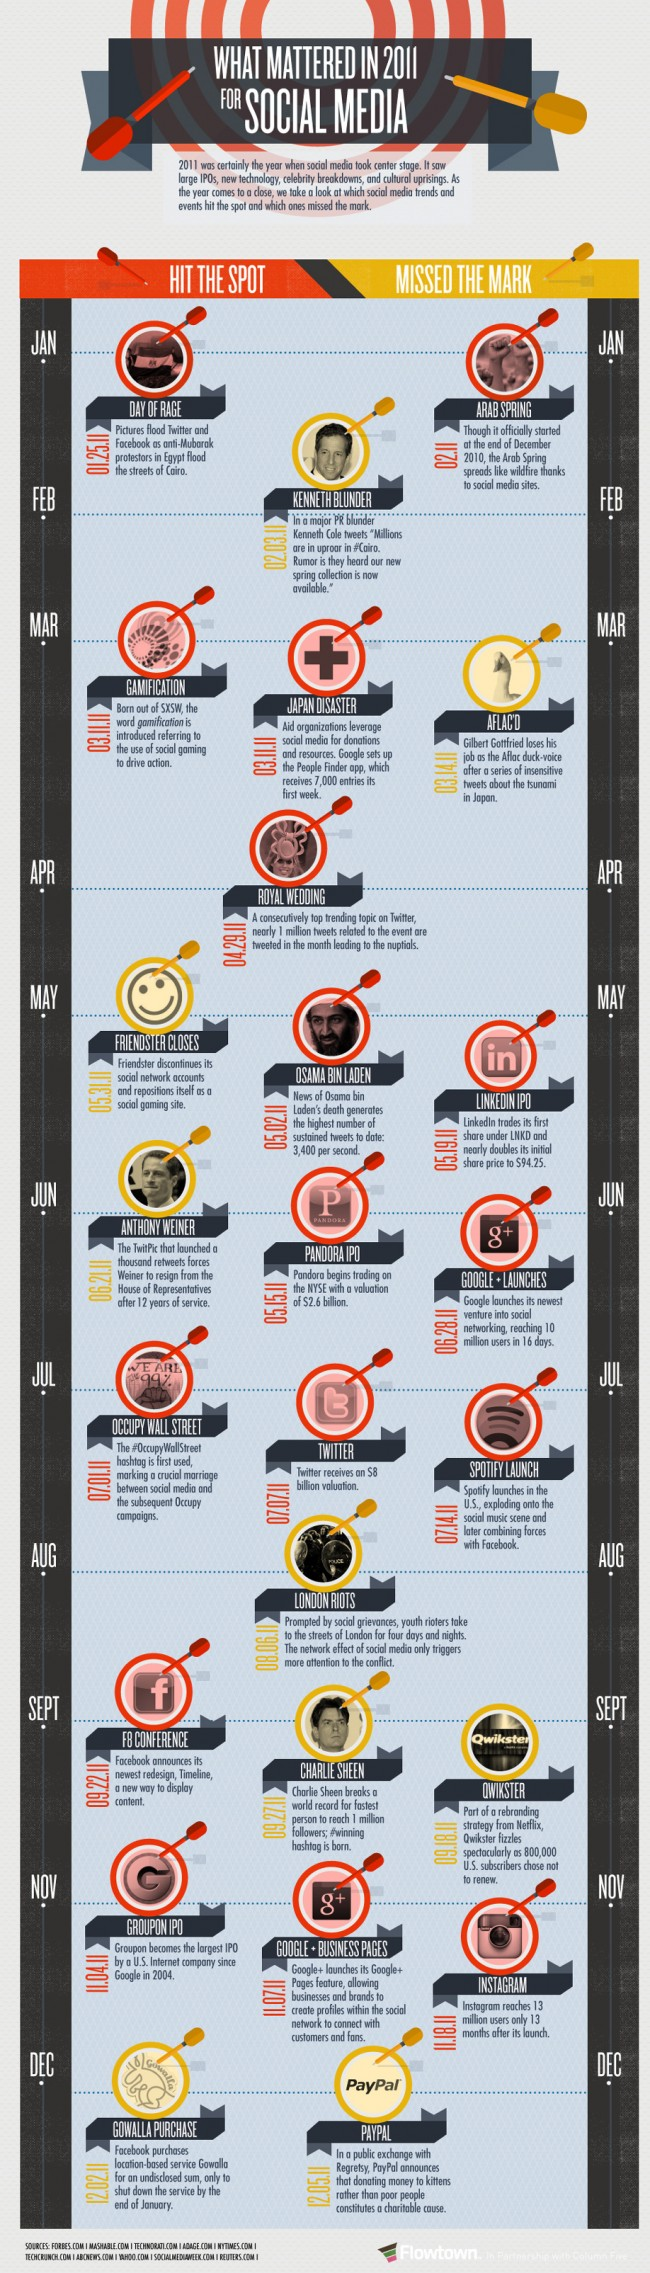 Infographic: What Mattered Most in Social Media in 2011? http://mediatapper.com/infographic-what-mattered-most-in-social-media-in-2011/